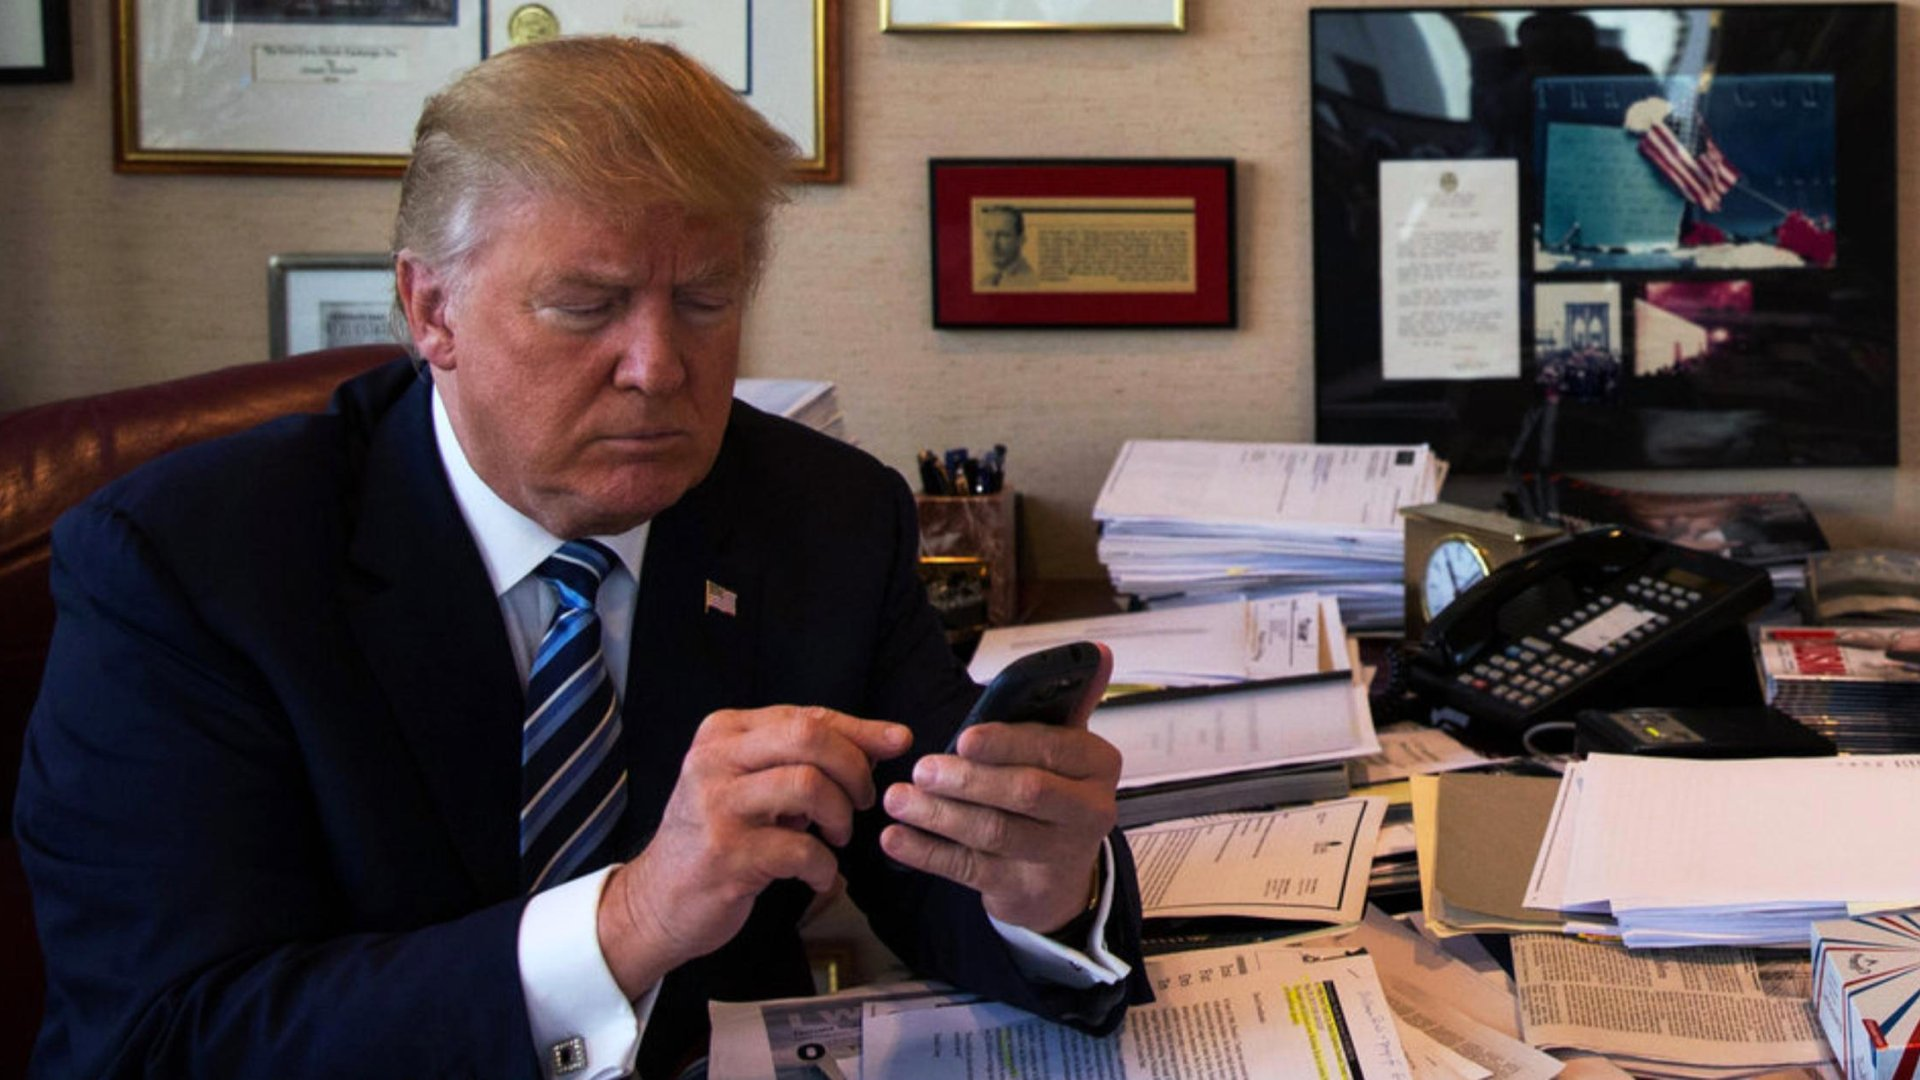 Trump starting his workday later to spend more time watching TV and tweeting: report https://t.co/kYwnXJzqRq https://t.co/QegPQKc5tJ